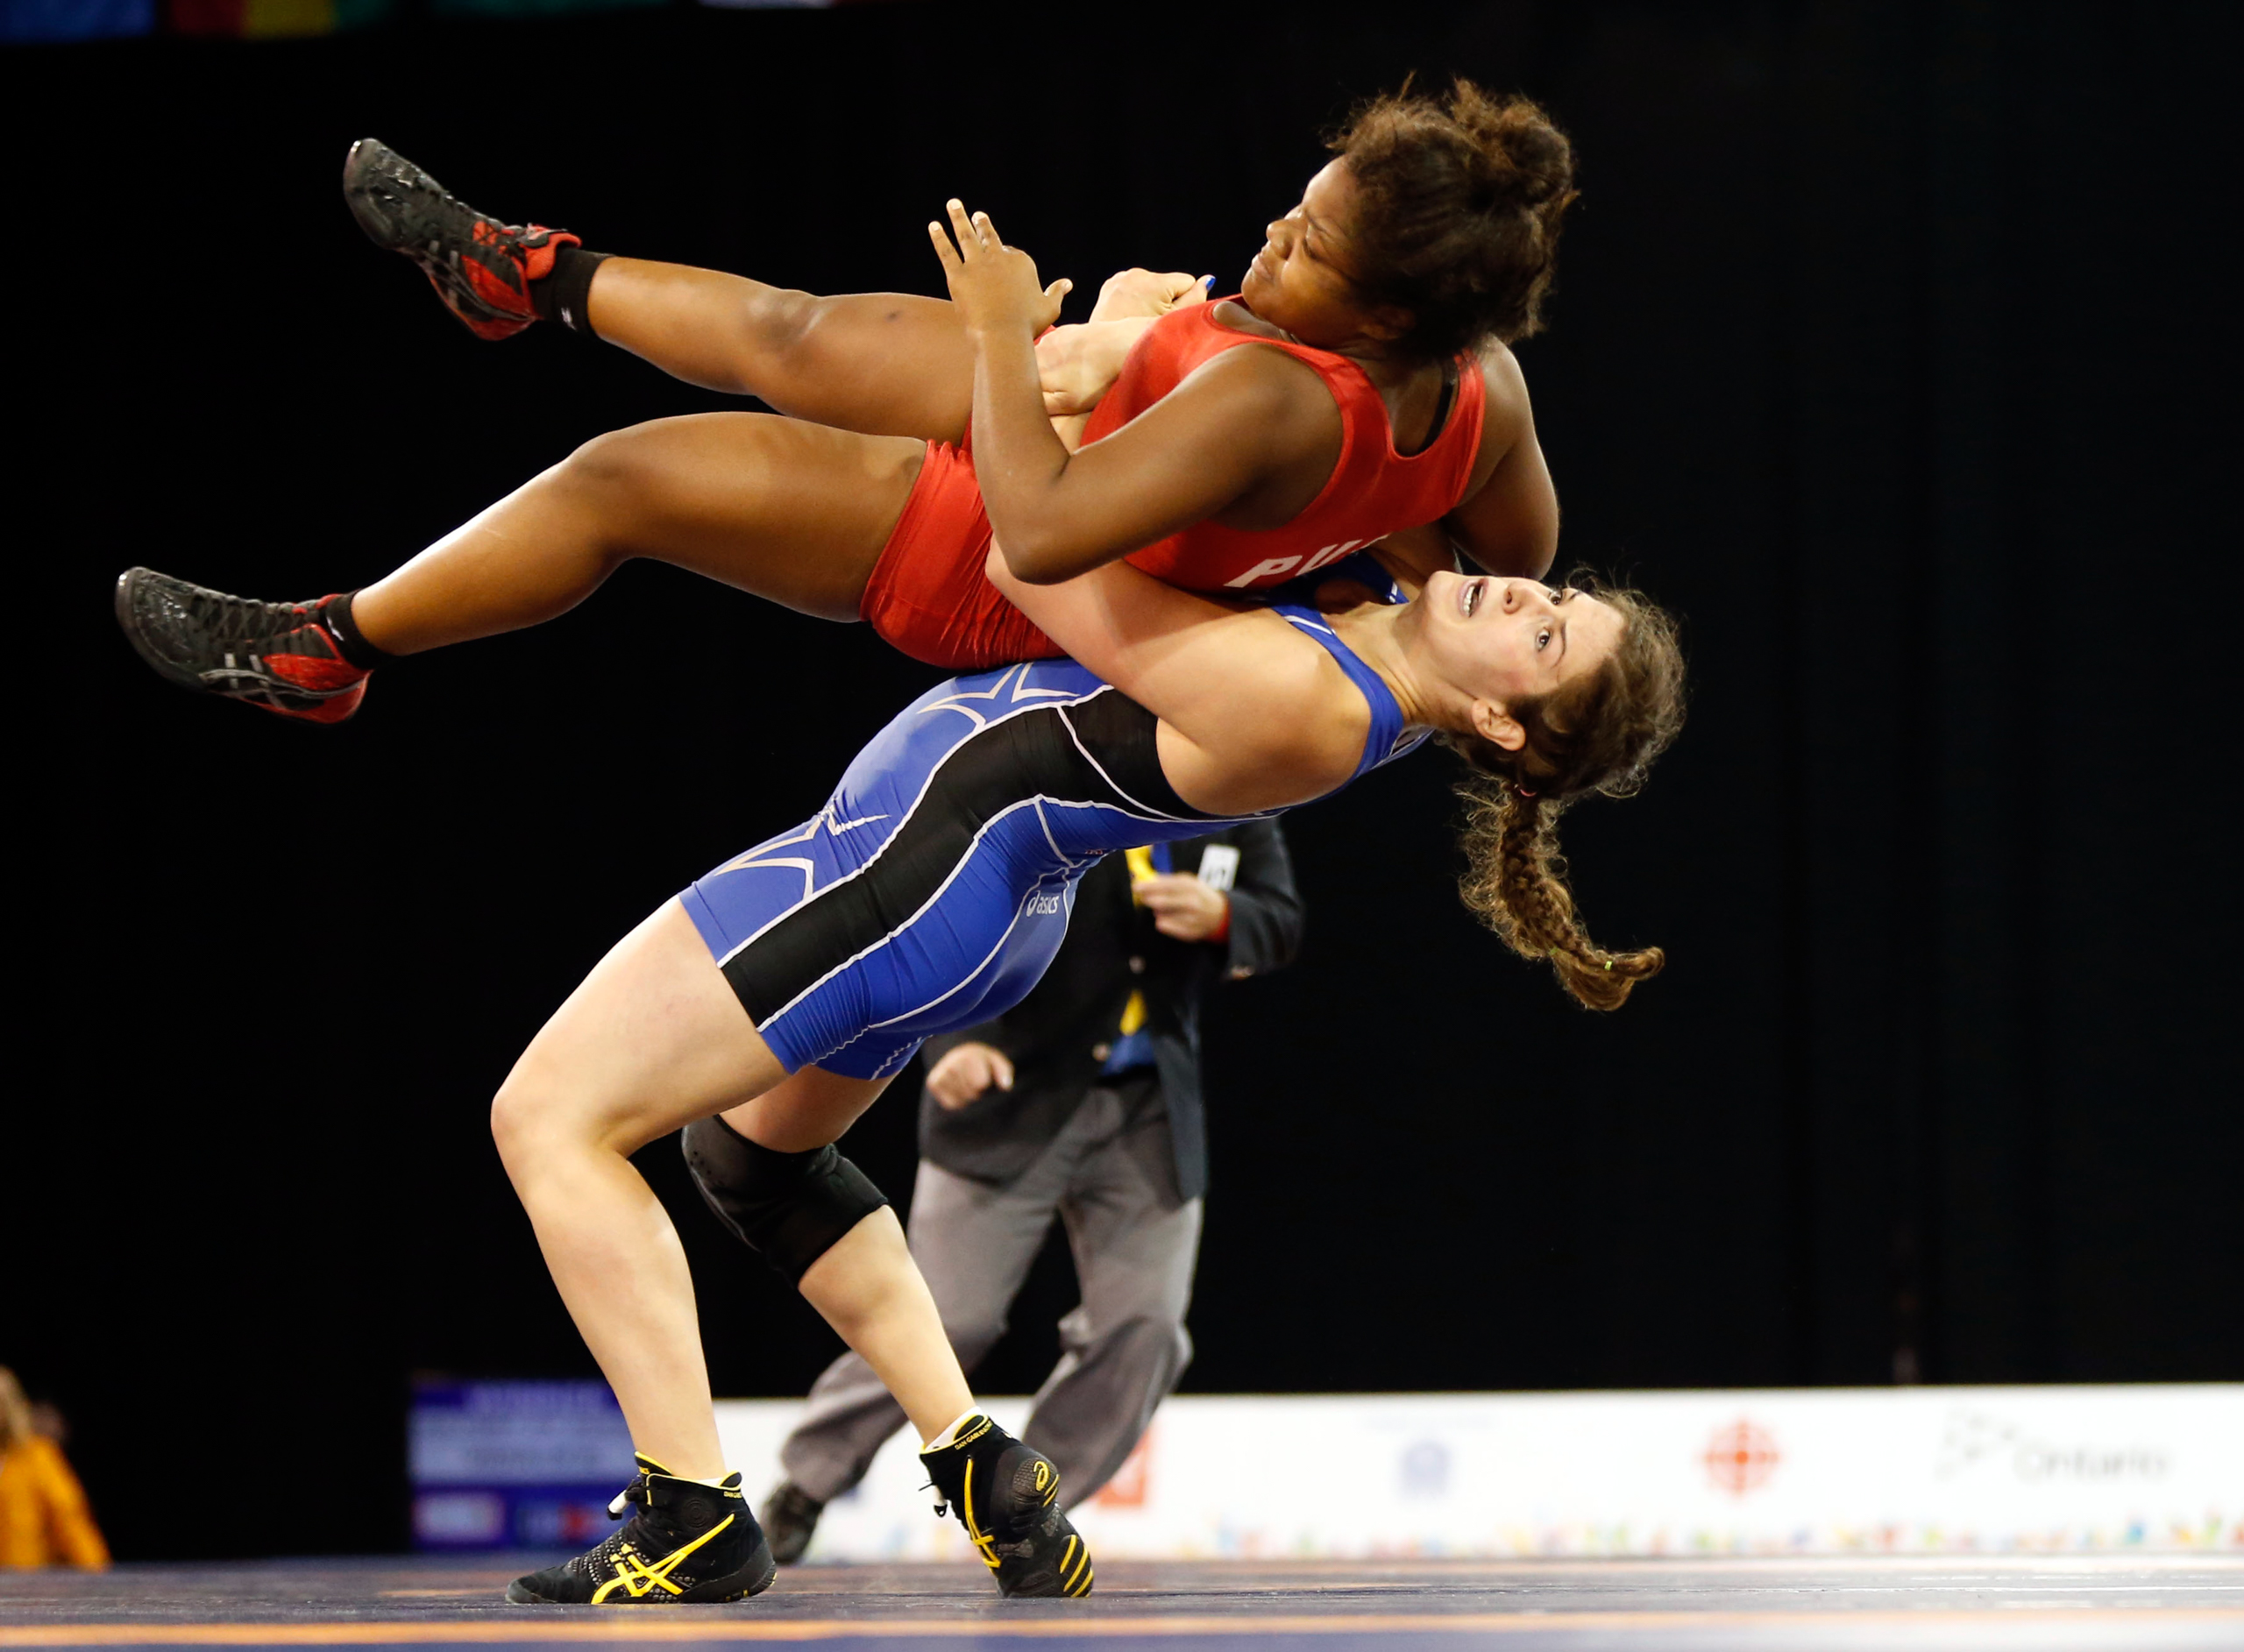 """<strong>Adeline Gray, Wrestling, USA</strong>A three-time world champion and daughter of a Denver police officer, Gray, 25, is a favorite to win America's first-ever gold in women's wrestling. """"Where I feel creative,"""" she says, """"is on the wrestling mat."""""""